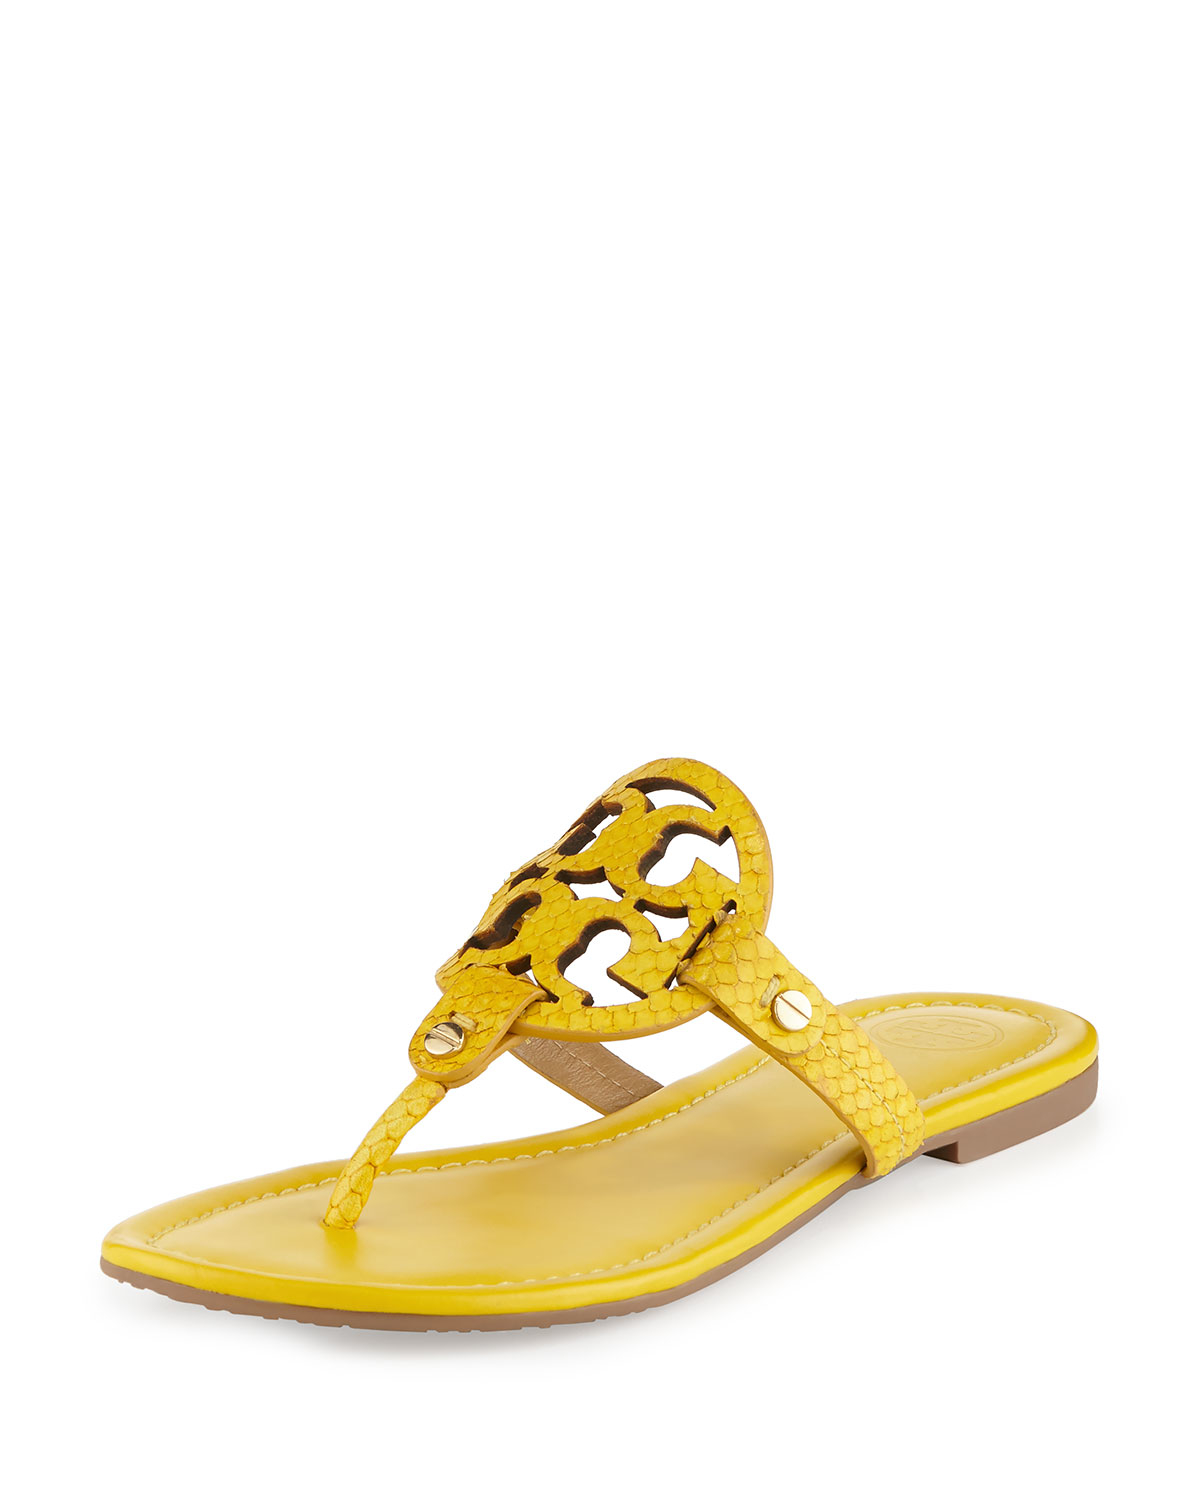 75a0444d6 Lyst - Tory Burch Miller Embossed-Leather Sandals in Yellow